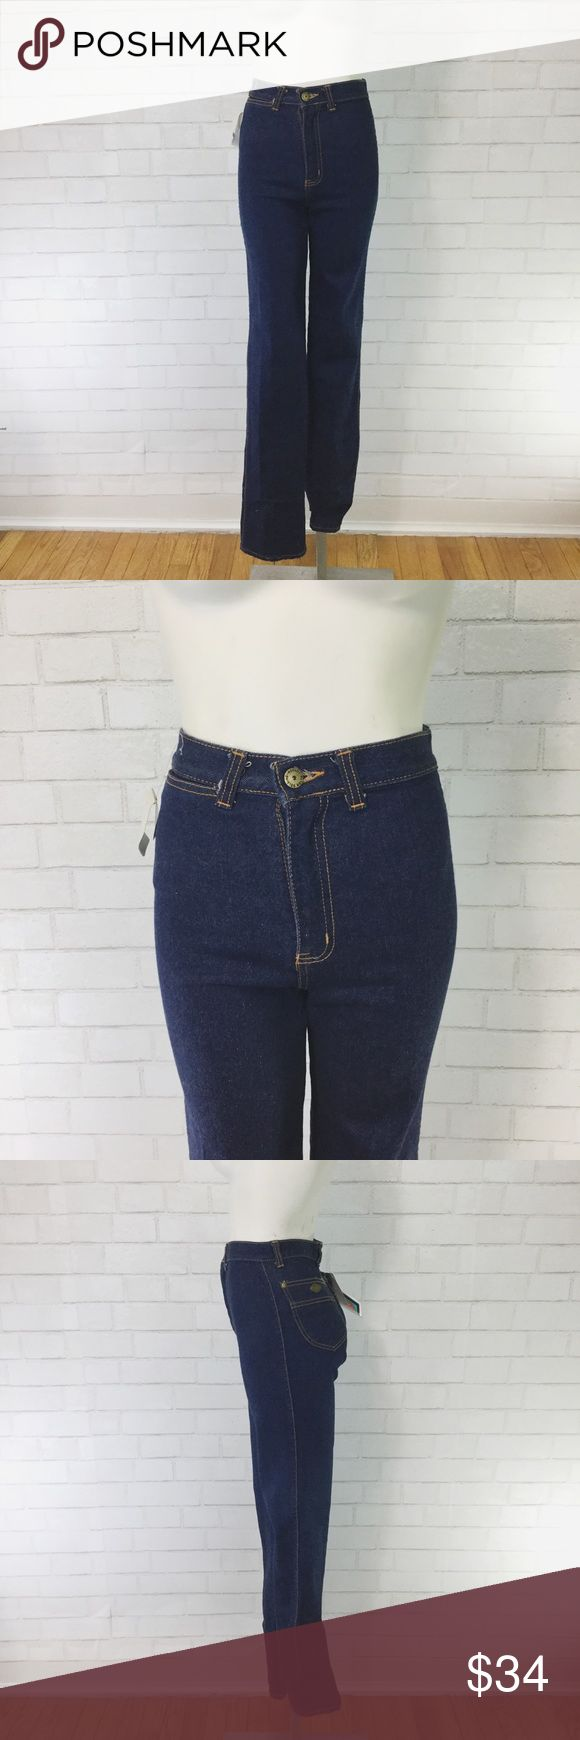 """Vintage Deadstock Peter Golding High Waist Jeans These jeans are true rock and roll style. My mannequin typically fits a modern size 24 measurements are as follows... Waist= 12"""" Hips= 15"""" Rise= 11.5"""" Inseam= 32"""" Bottom leg opening= 7"""" Vintage Jeans Straight Leg"""